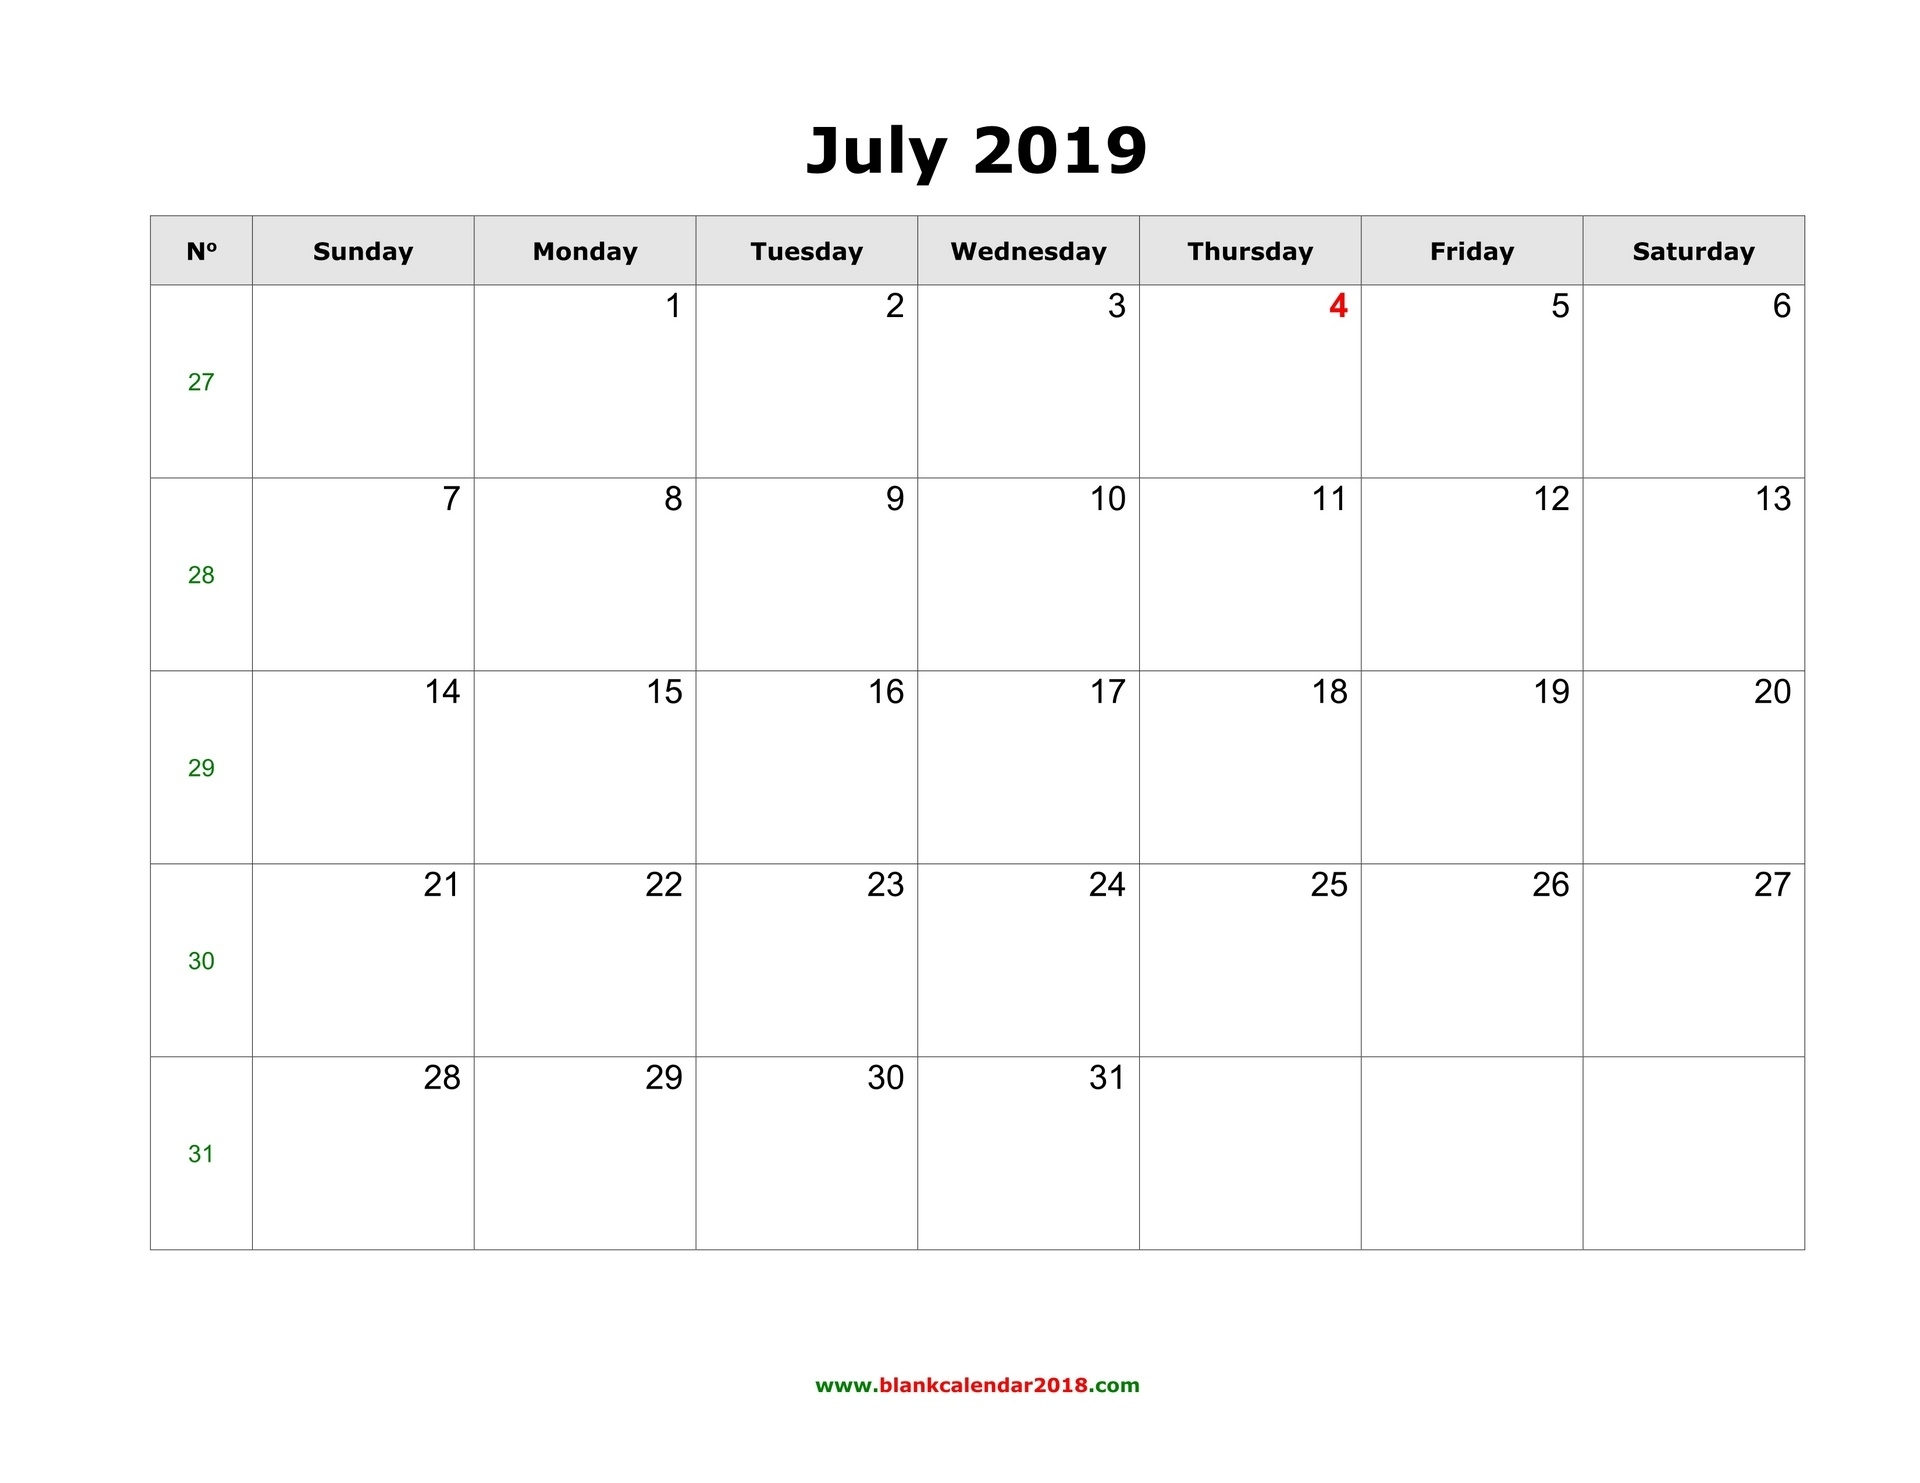 Blank Calendar For July 2019_Blank Calendar Can Type In